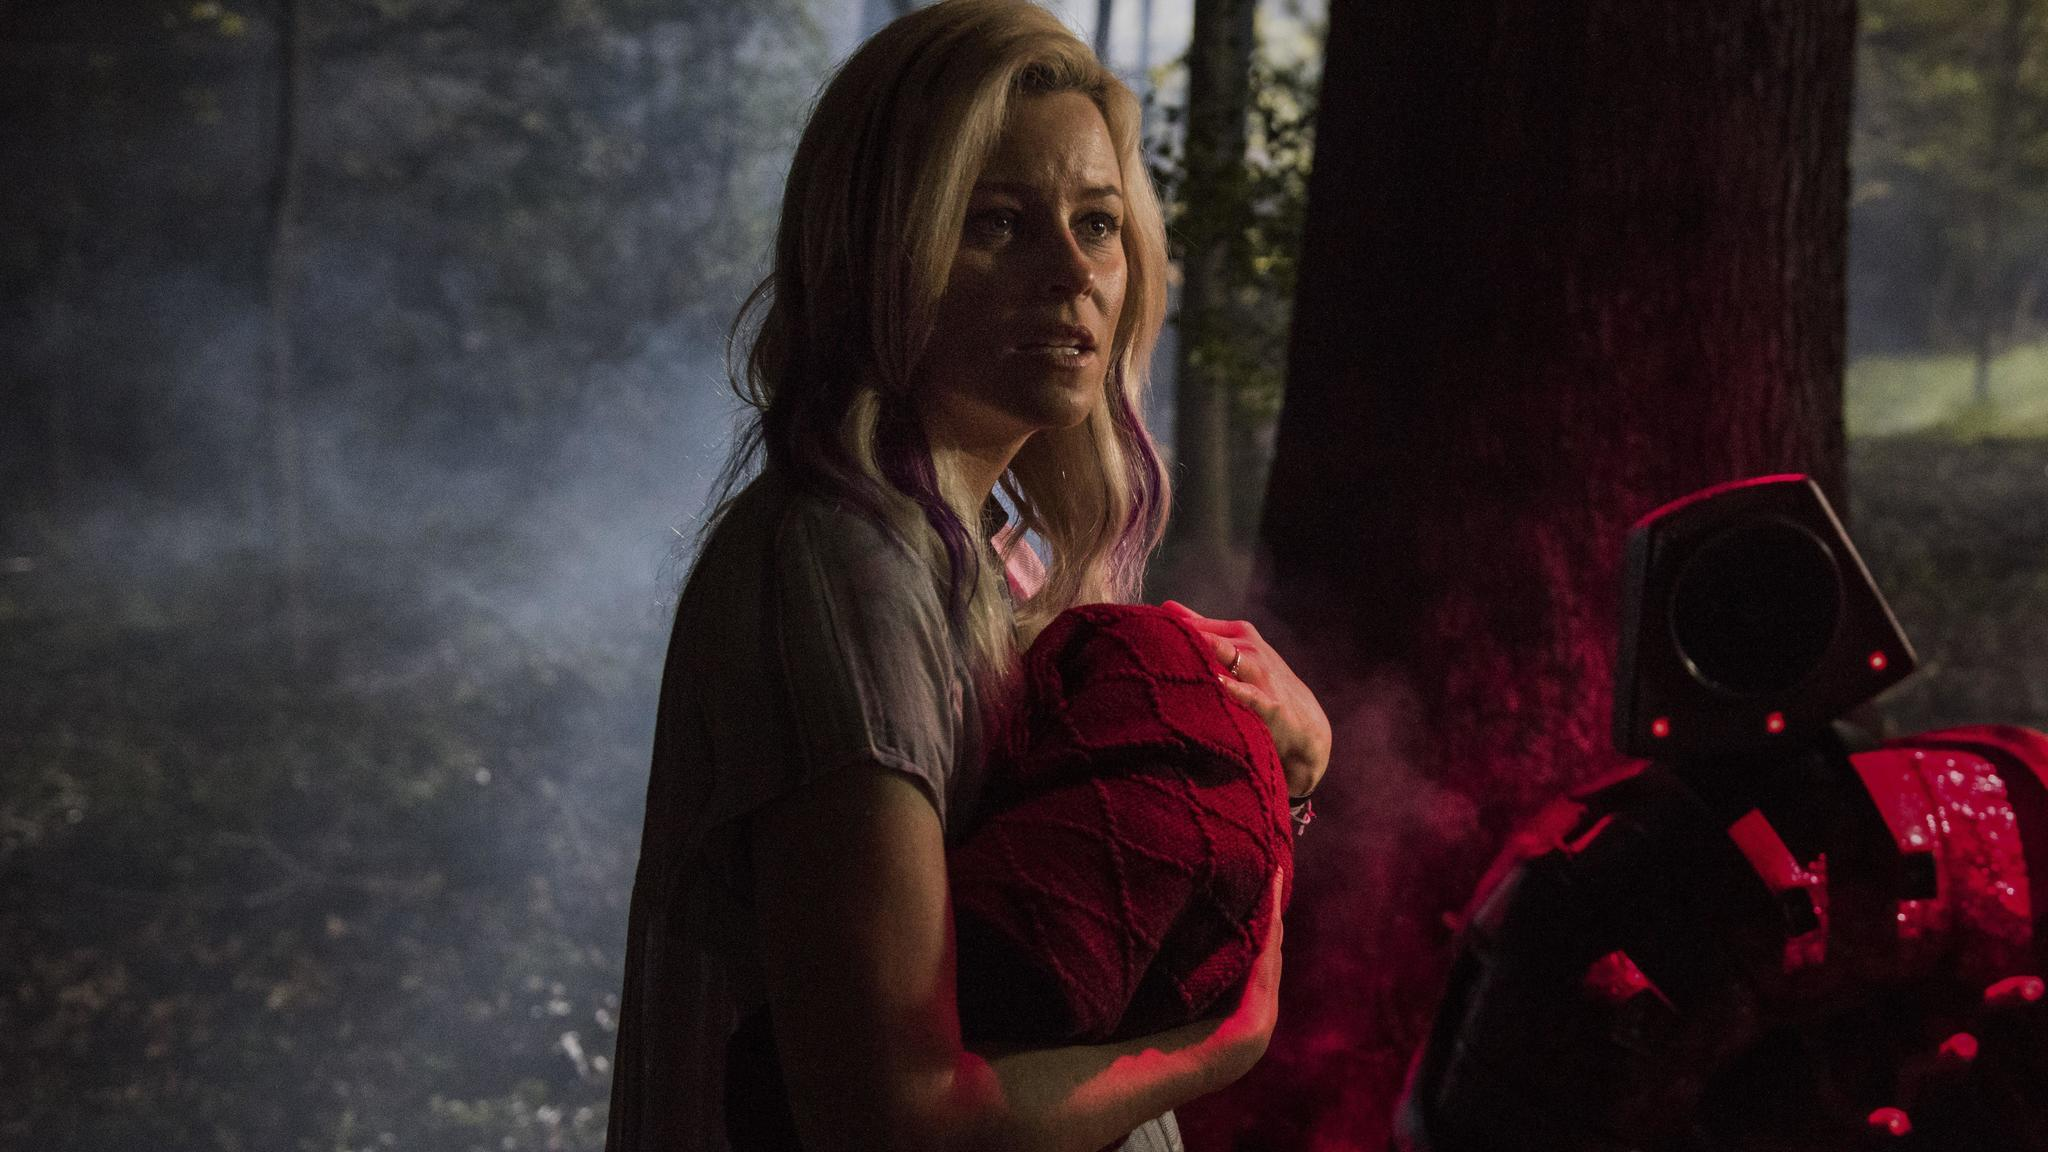 'Brightburn' review: Why is Elizabeth Banks in this mess of a movie?